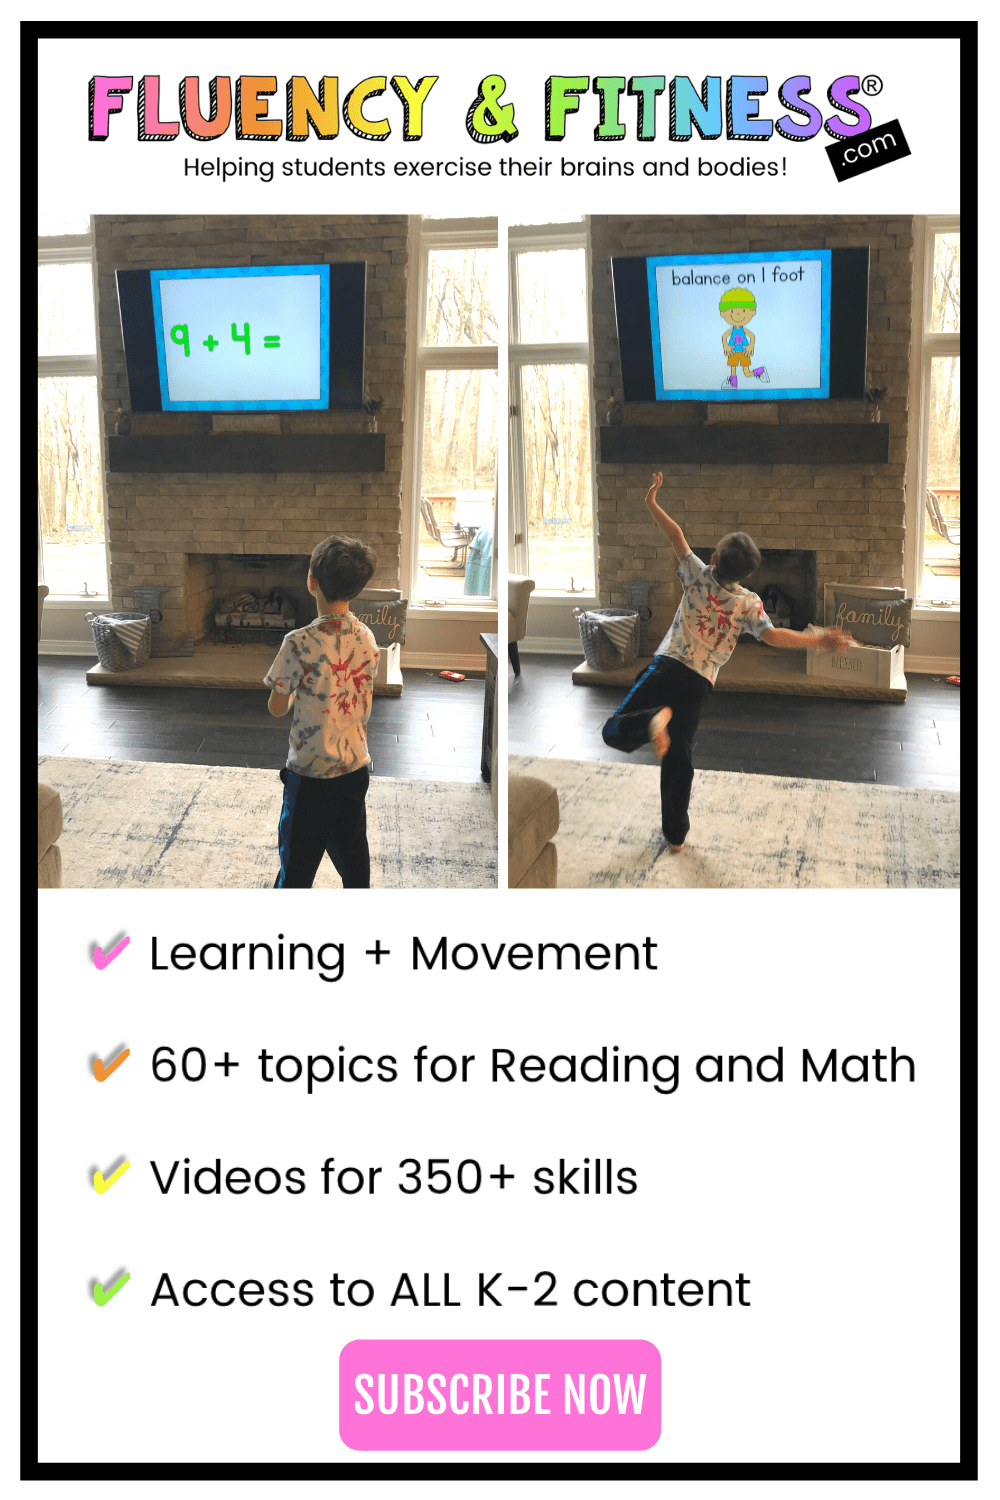 boy doing exercises while learning math with Fluency & Fitness videos